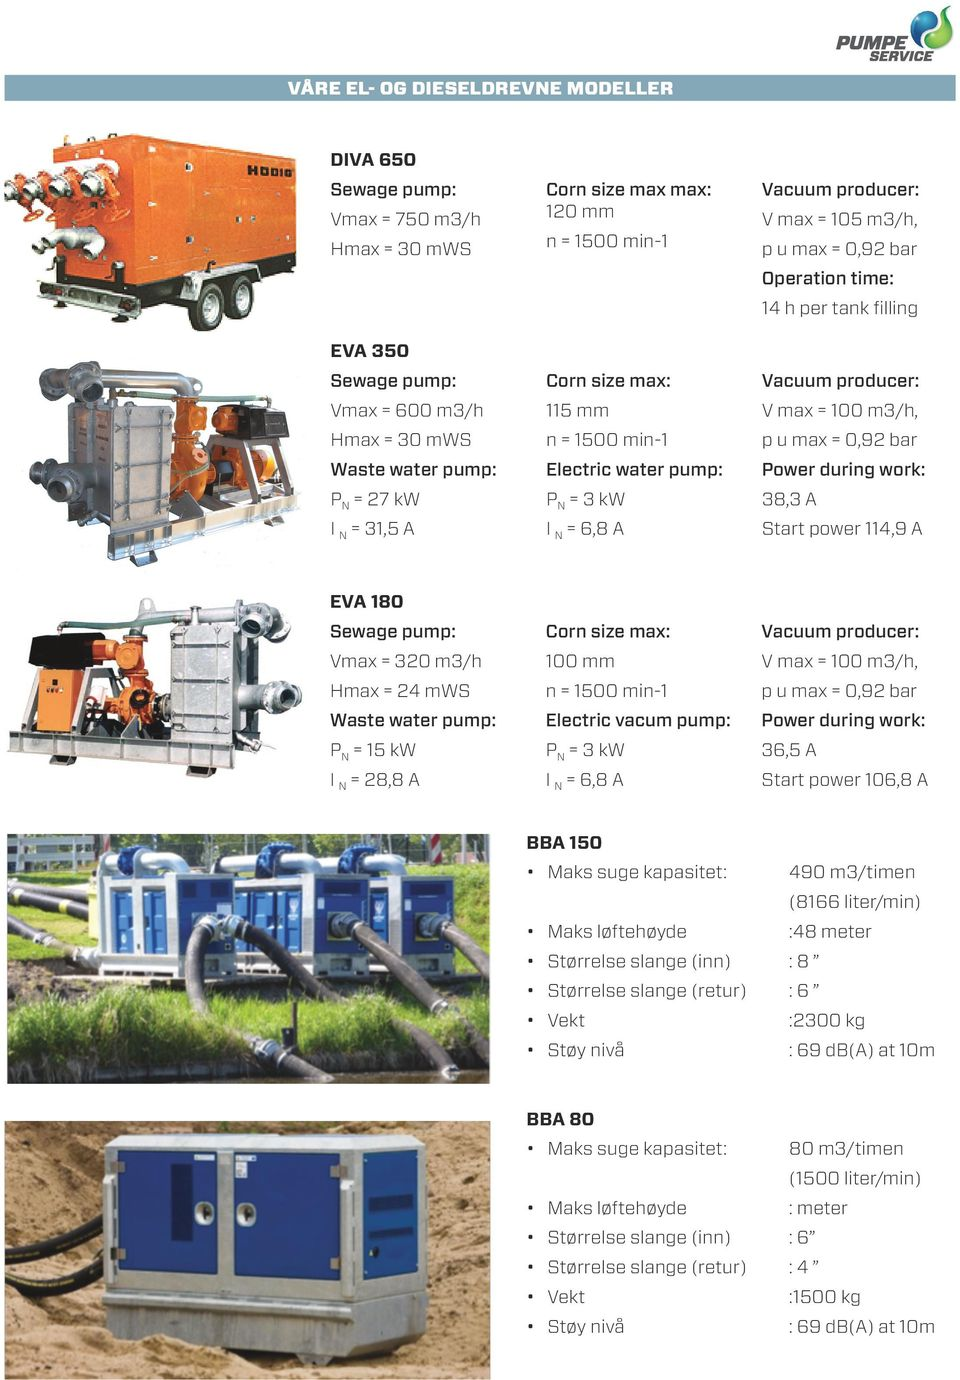 Vacuum producer: V max = 100 m3/h, p u max = 0,92 bar Power during work: 38,3 A Start power 114,9 A EVA 180 Sewage pump: Vmax = 320 m3/h Hmax = 24 mws Waste water pump: P N = 15 kw I N = 28,8 A Corn